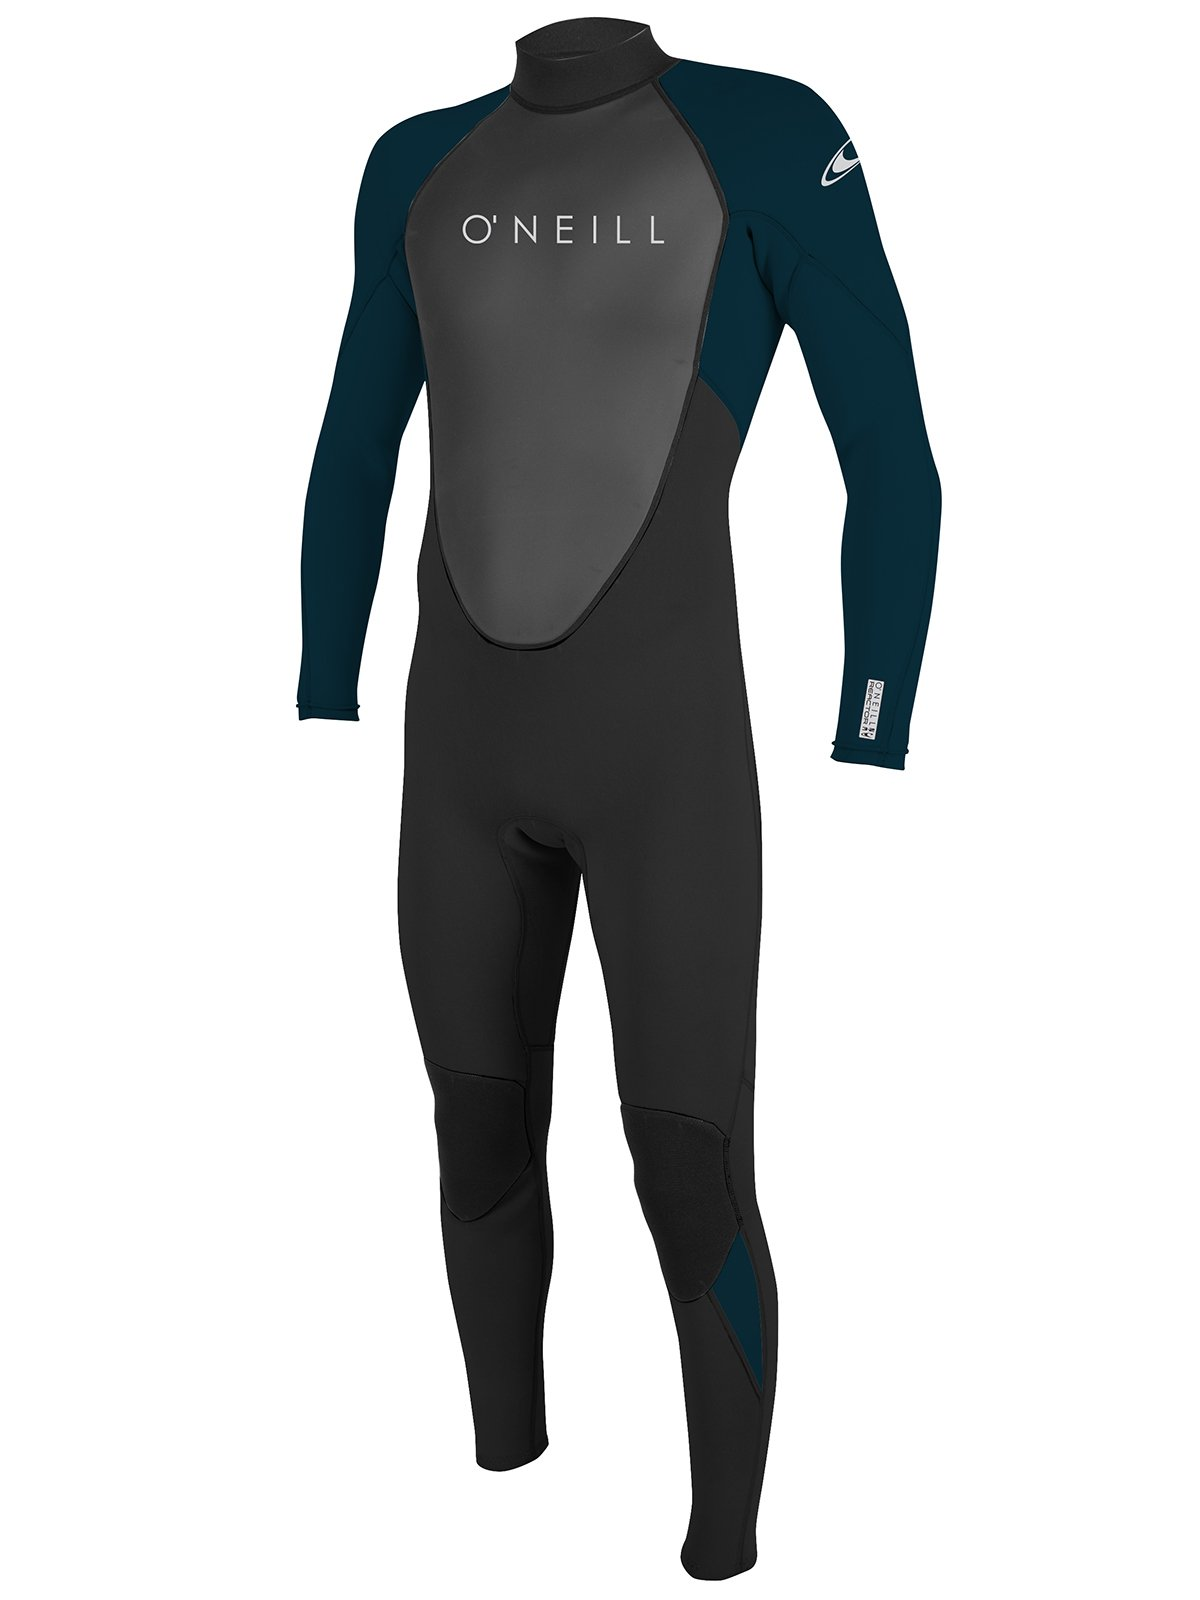 O'Neill Reactor 2 Men's 3/2mm Full Wetsuit S Black/slate (5283IS) by O'Neill Wetsuits